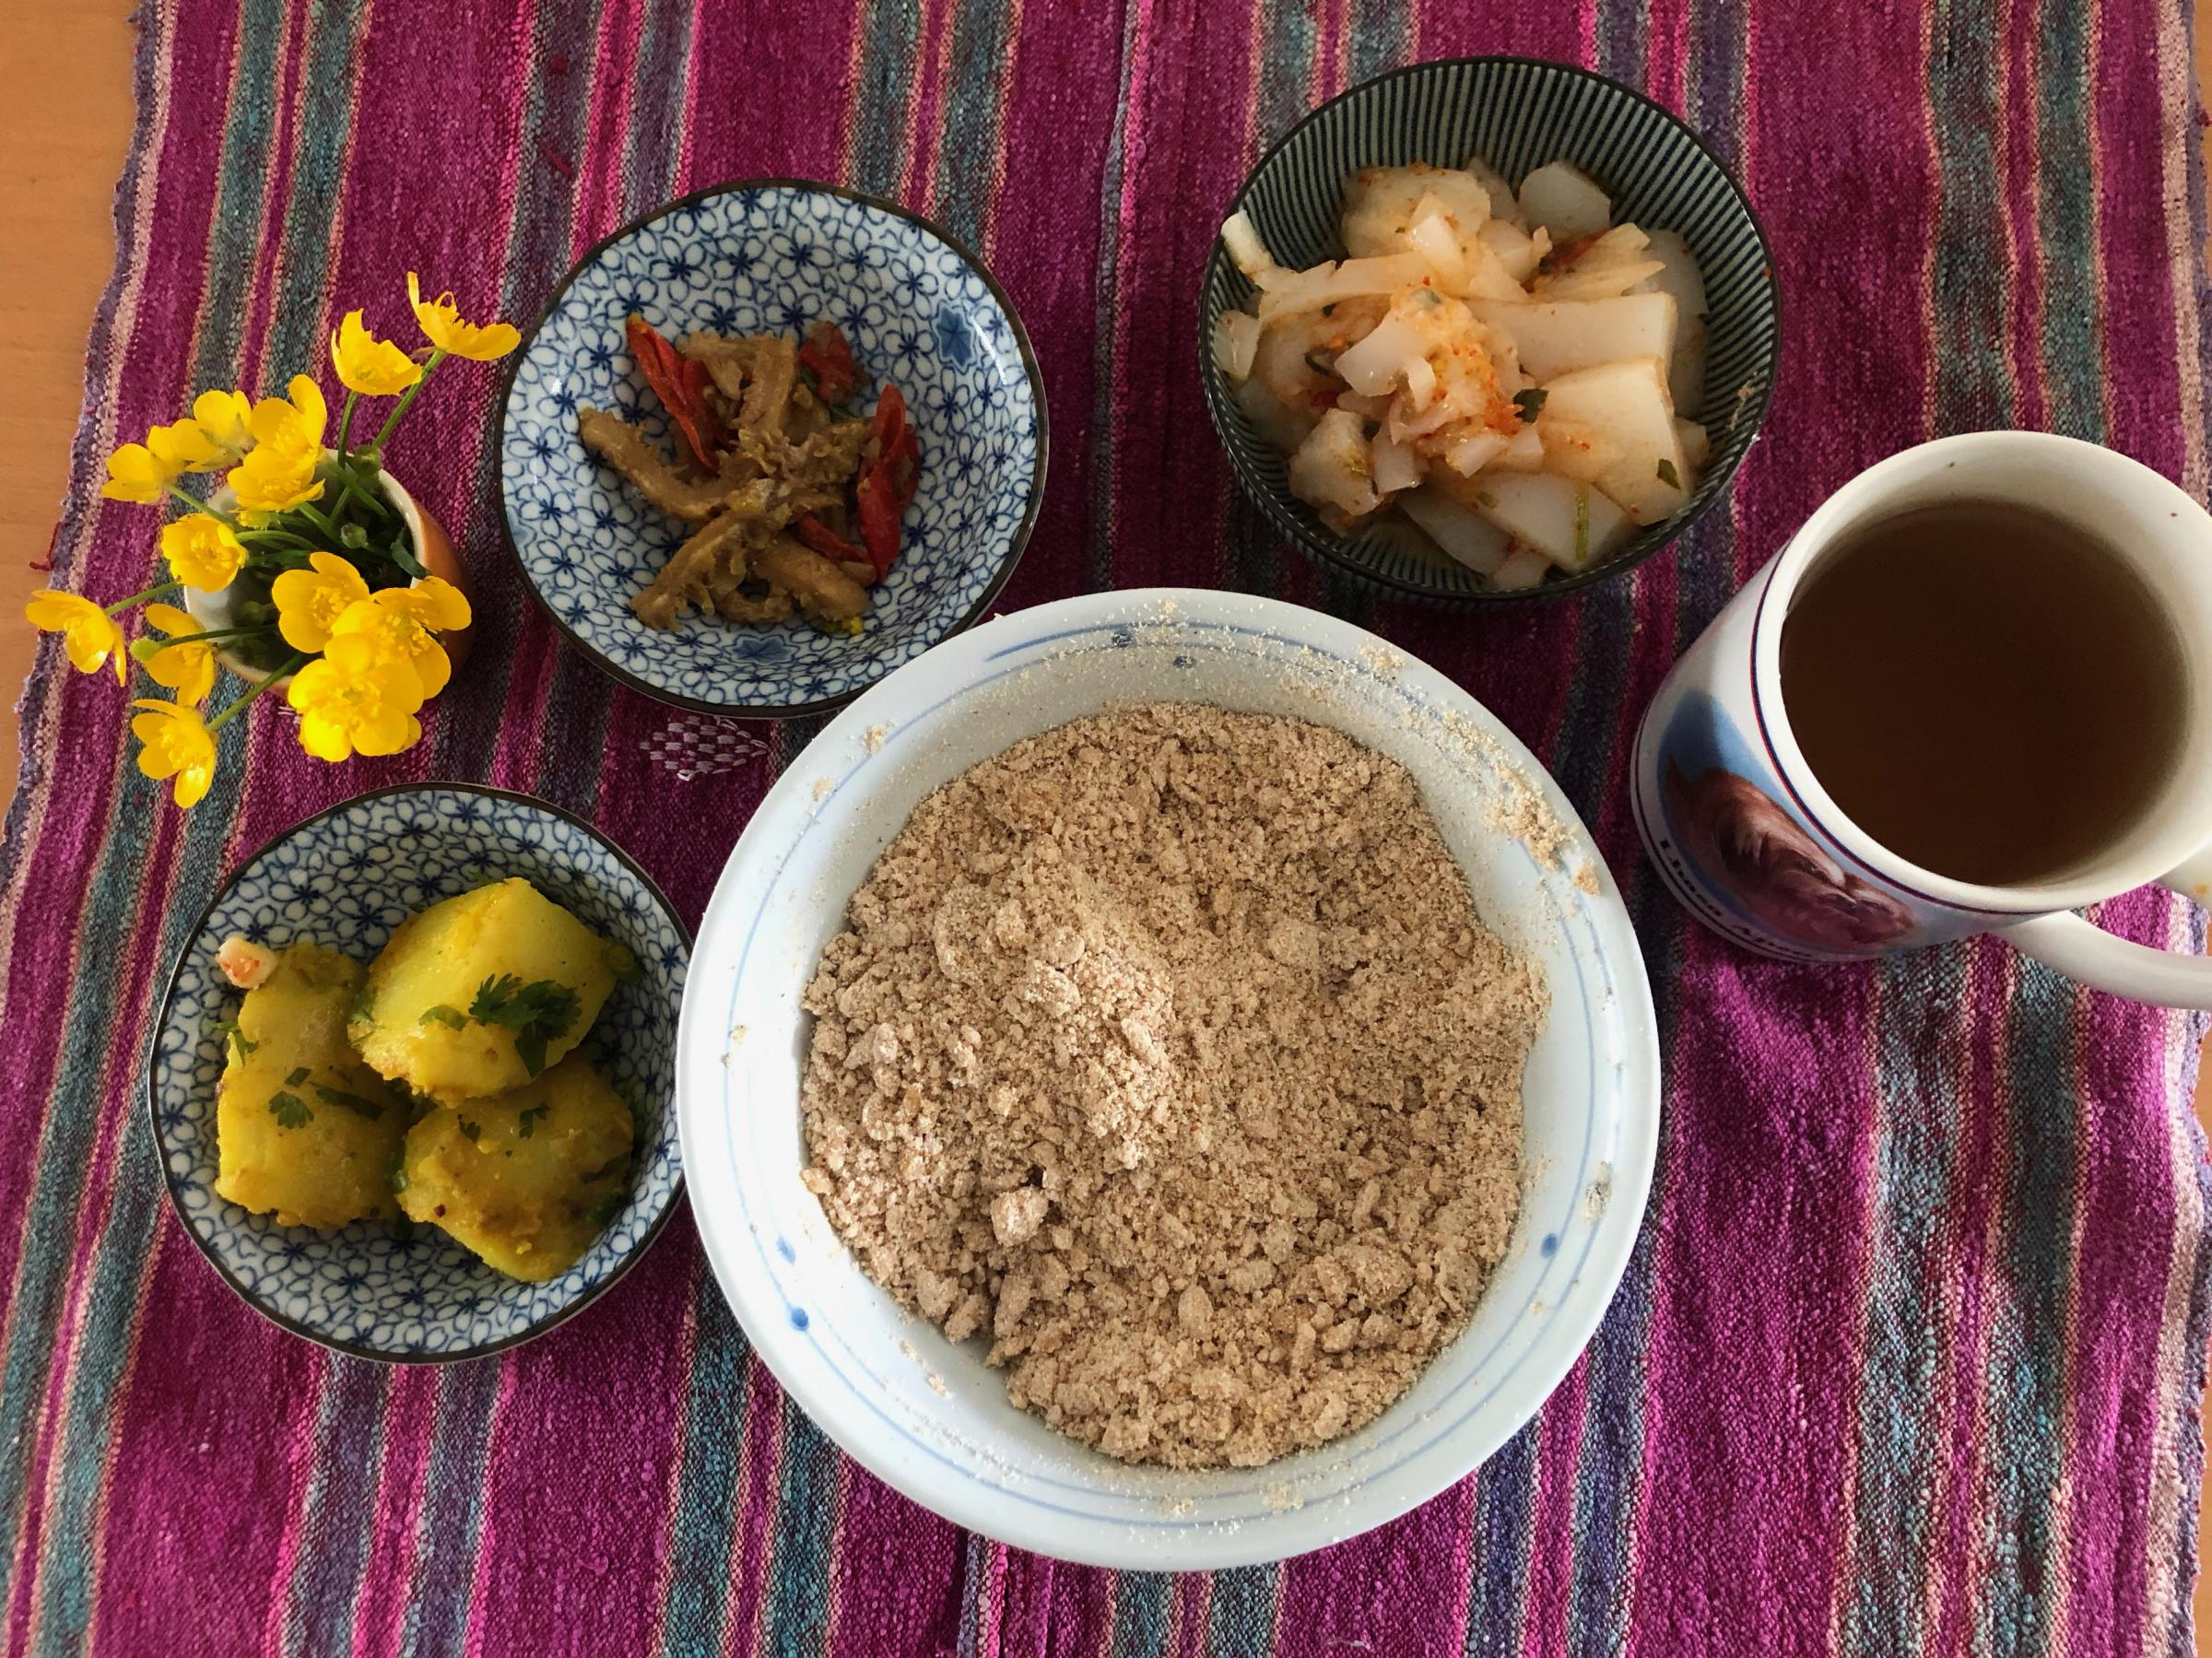 Tsampa: The Tibetan Cereal That Helped Spark An Uprising | KMUW